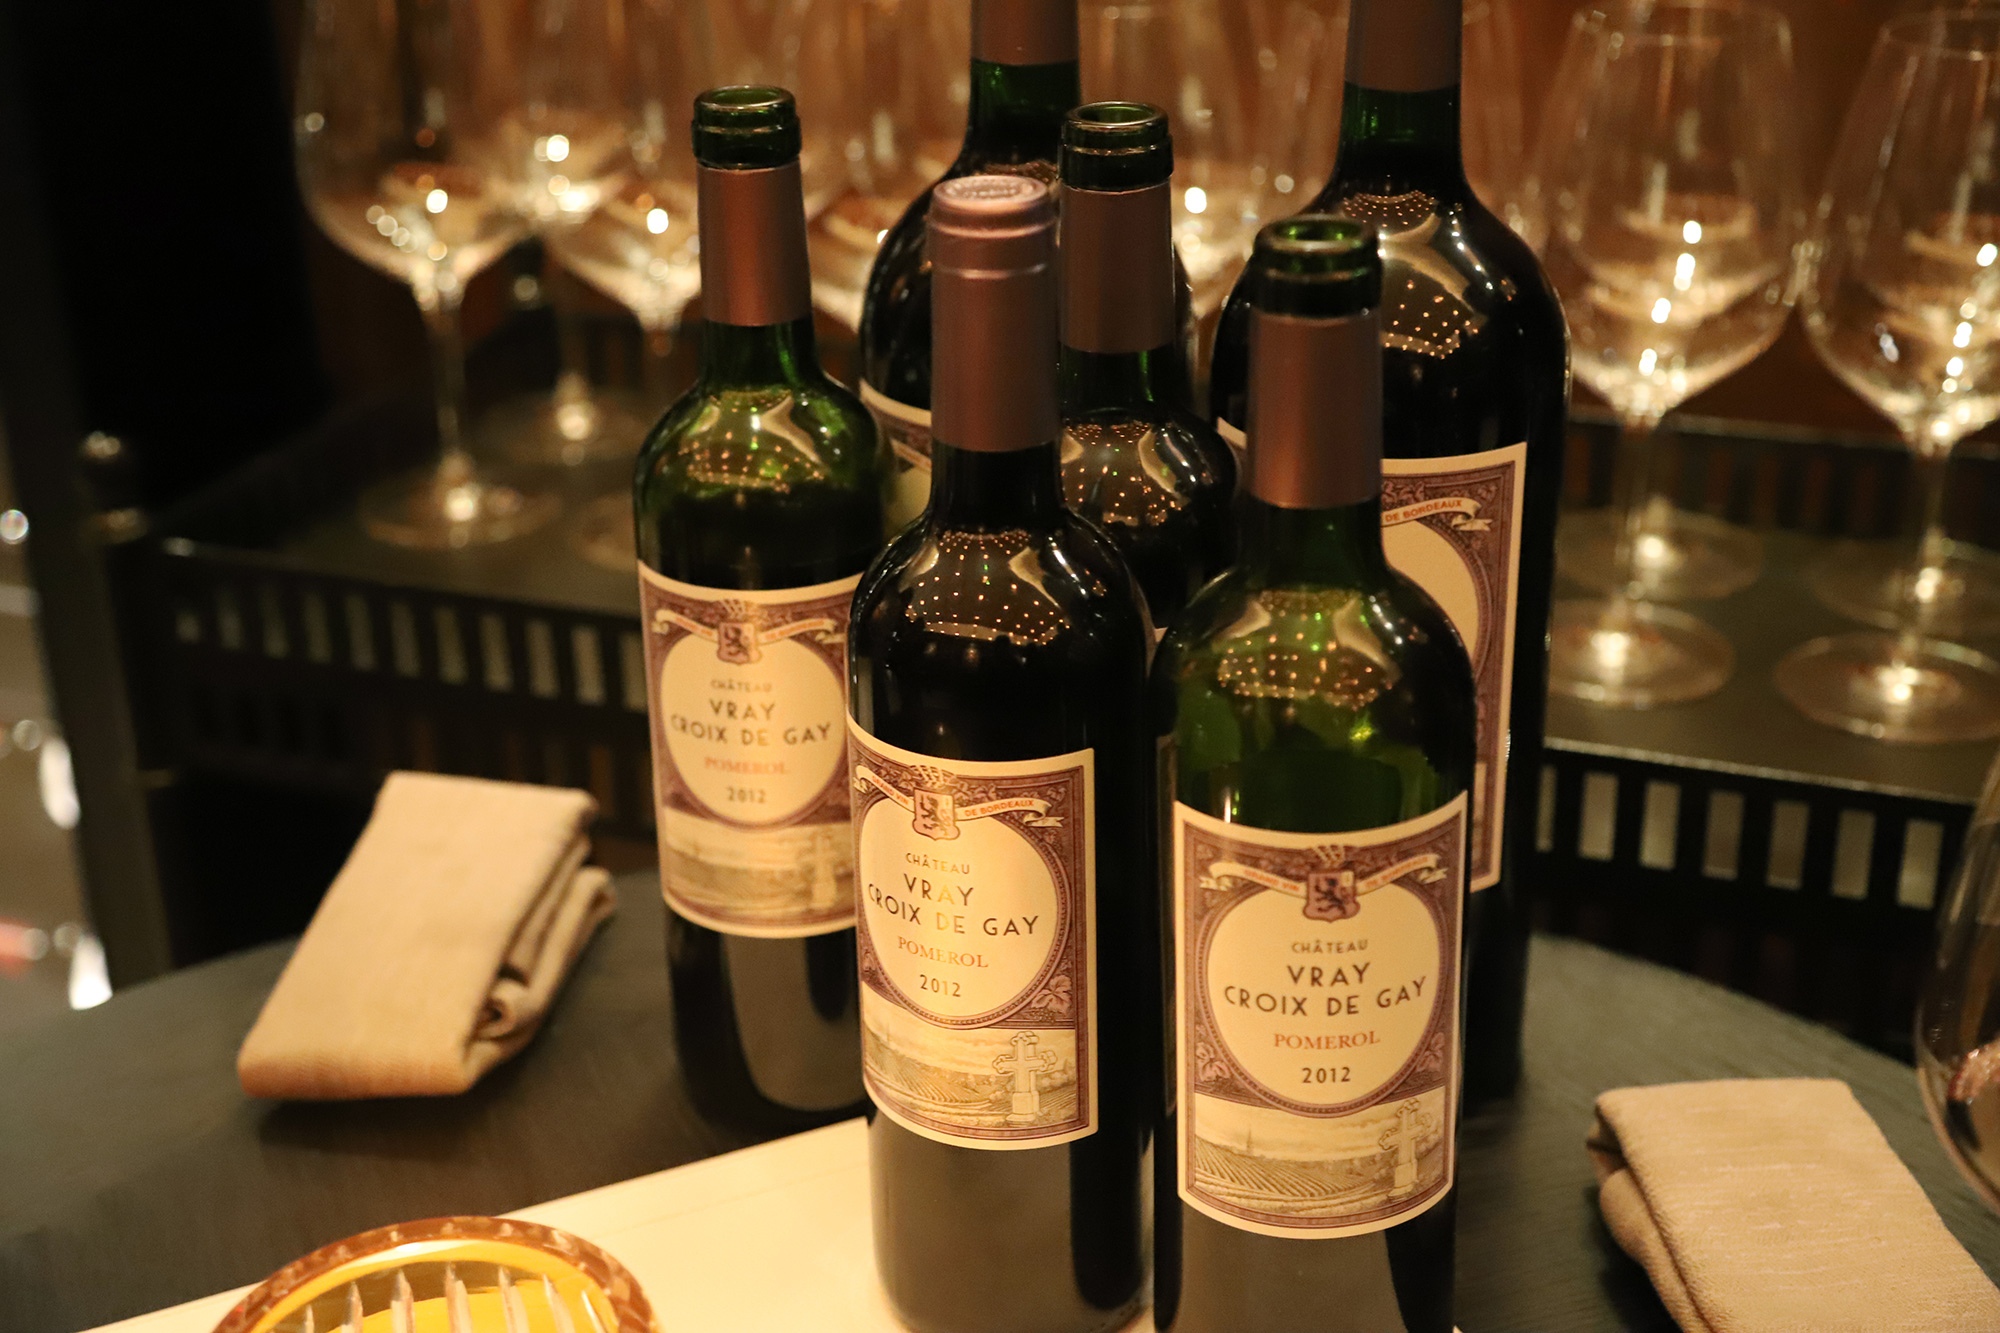 The Women of Brummell event included a chance to taste wines at The Private Club at The Four Seasons Ten Trinity Square